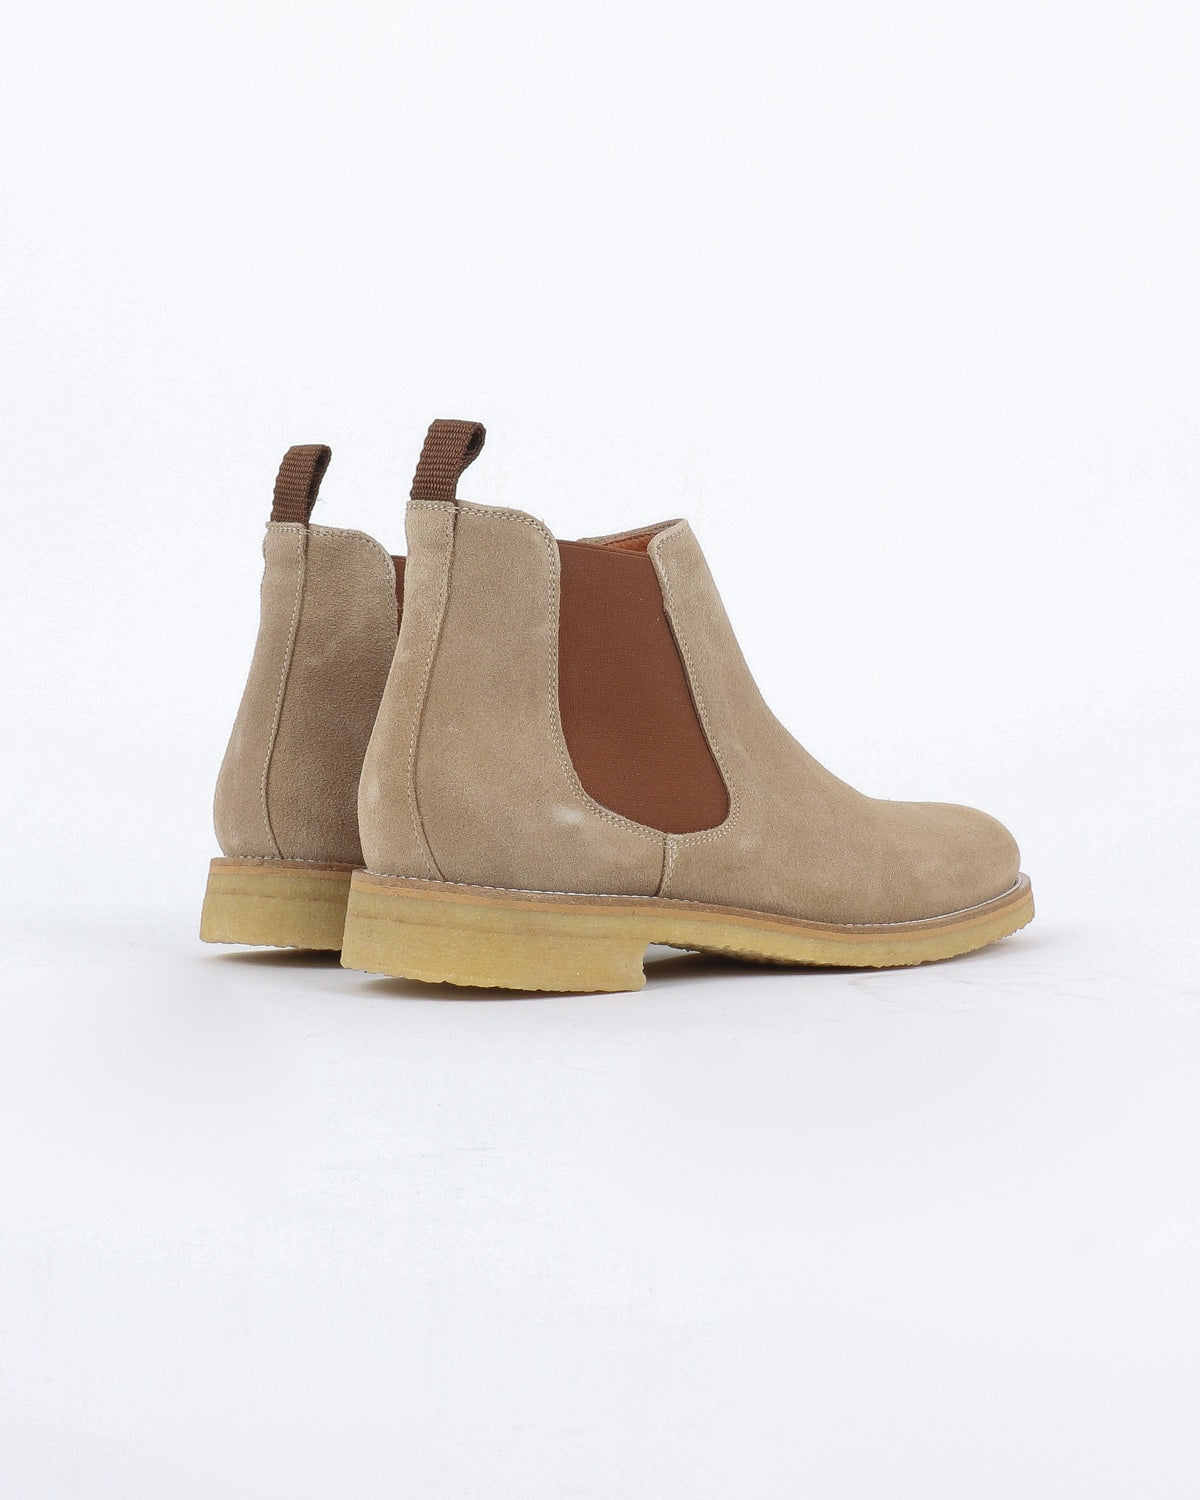 garment project_chelsea boot_tobacco_view_3_4